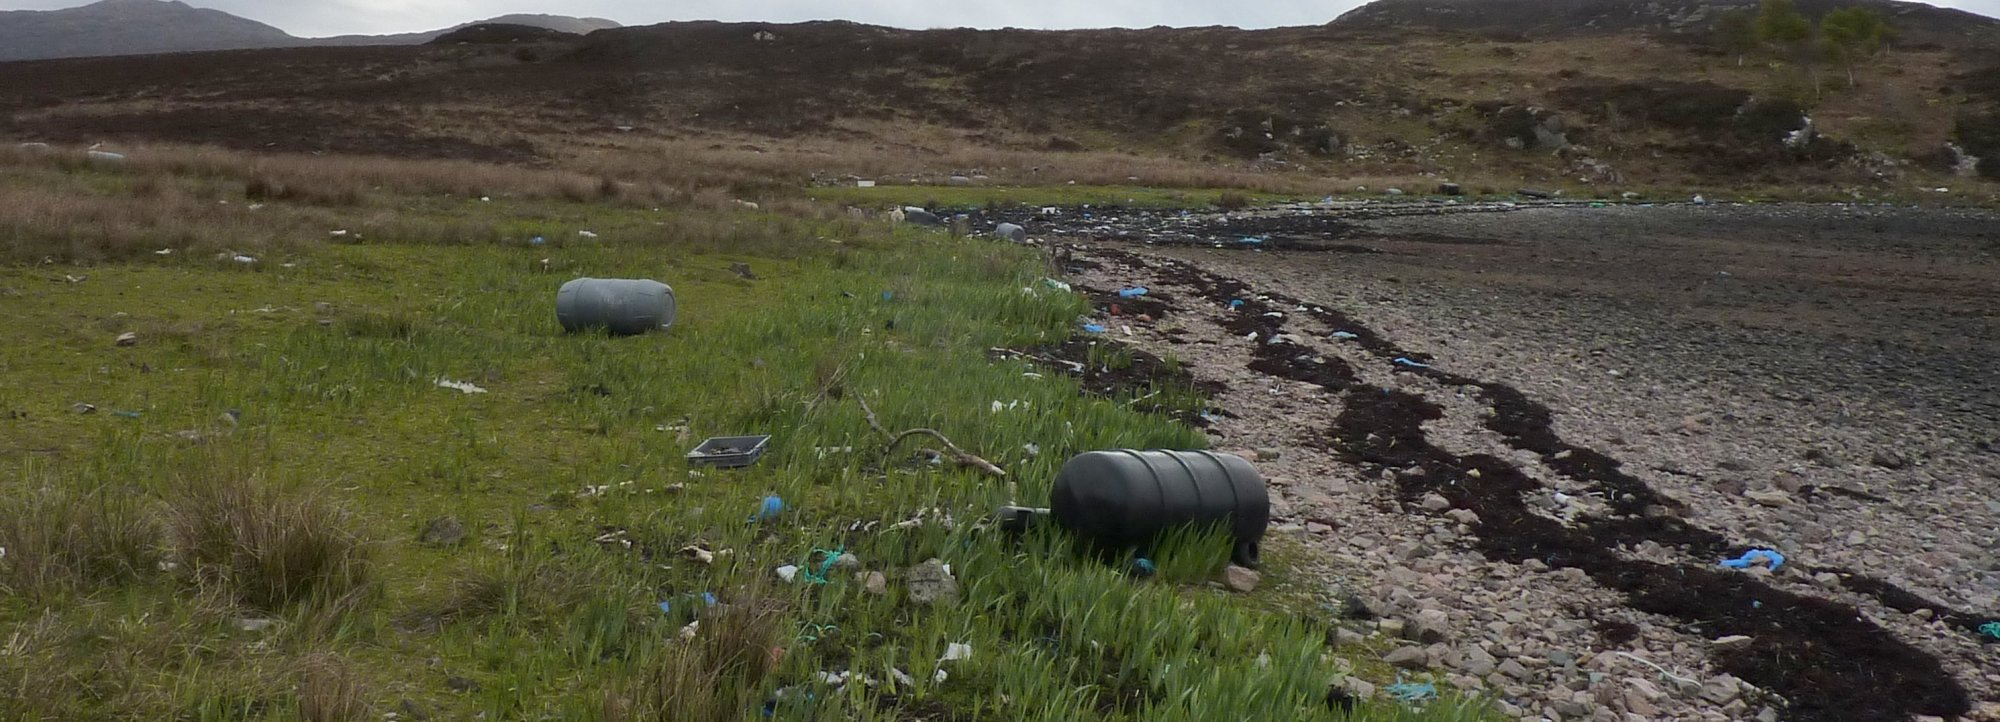 More litter and more drums as I approach the head of Loch Eishort